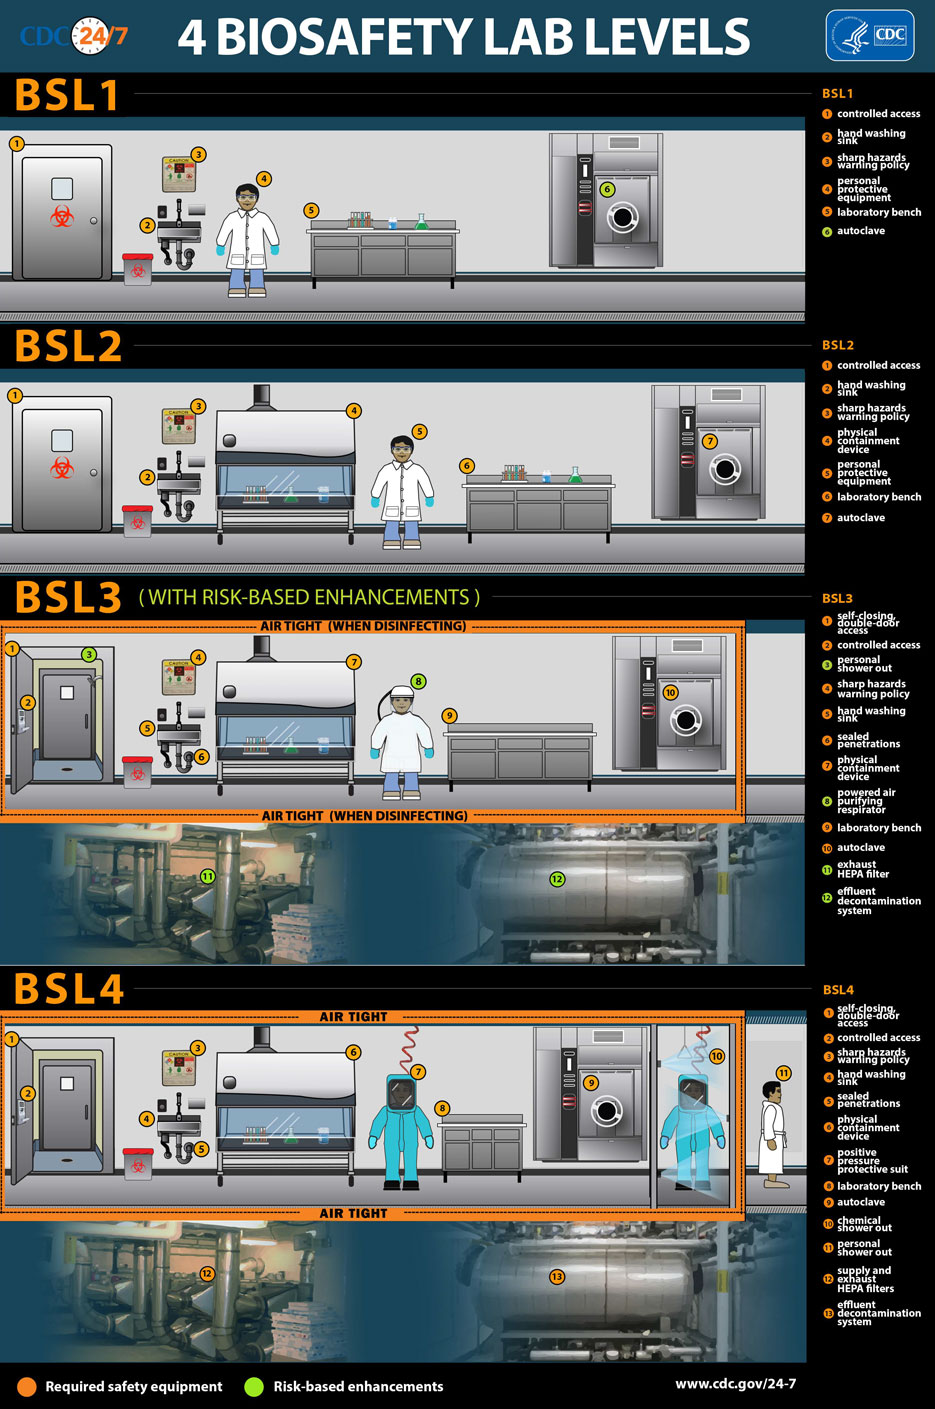 Biosaftety lab levels infographic by CDC